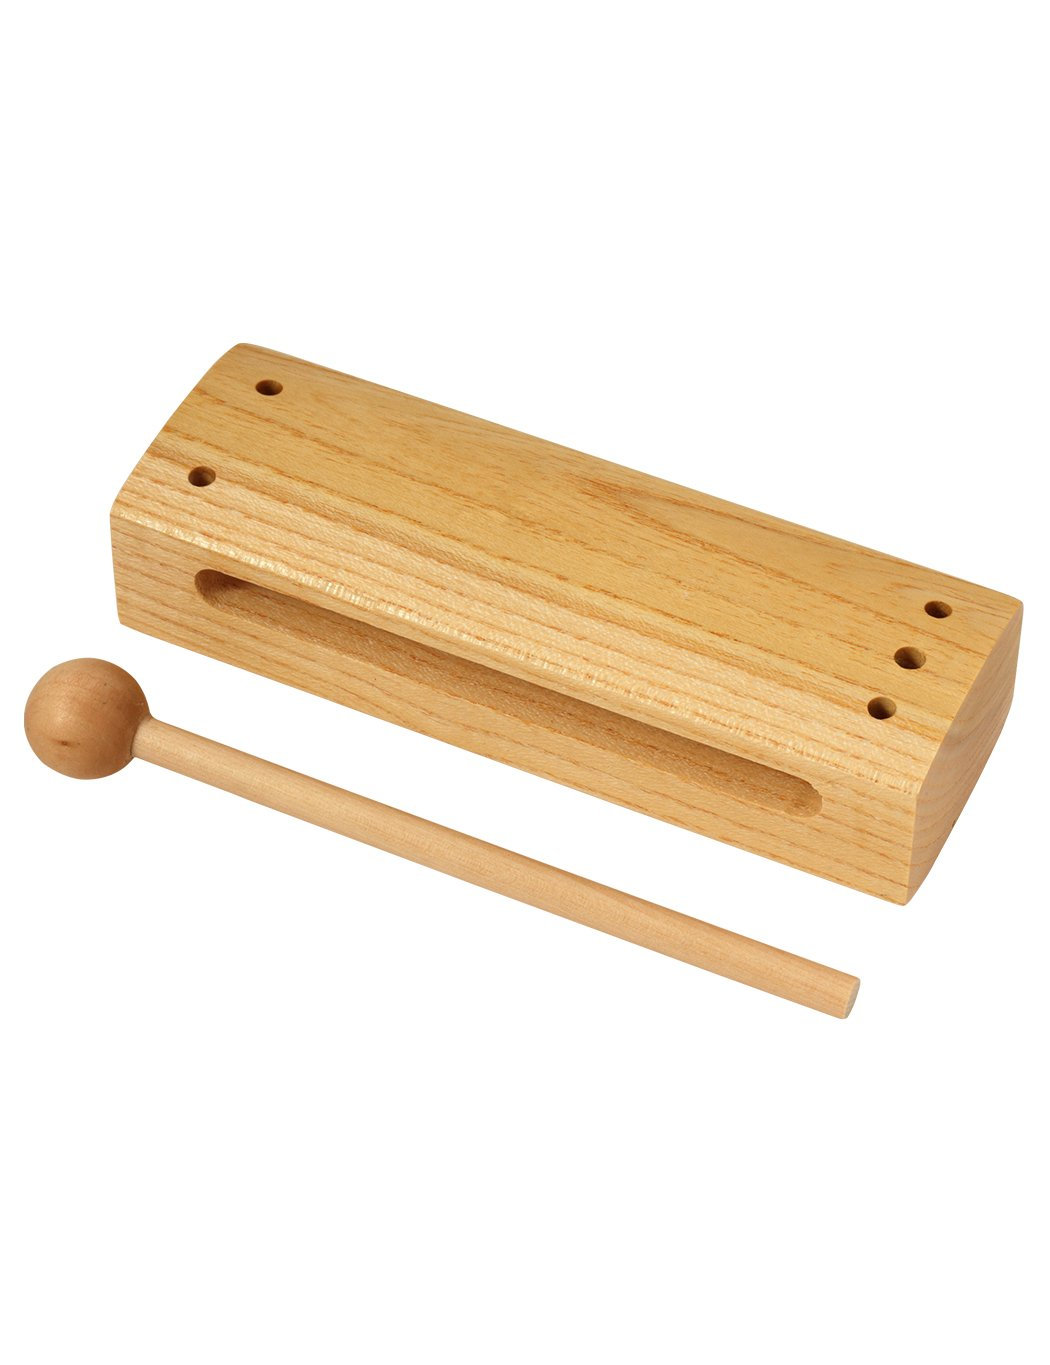 Large Wood Block With Mallet by ab kids-128 ab drums